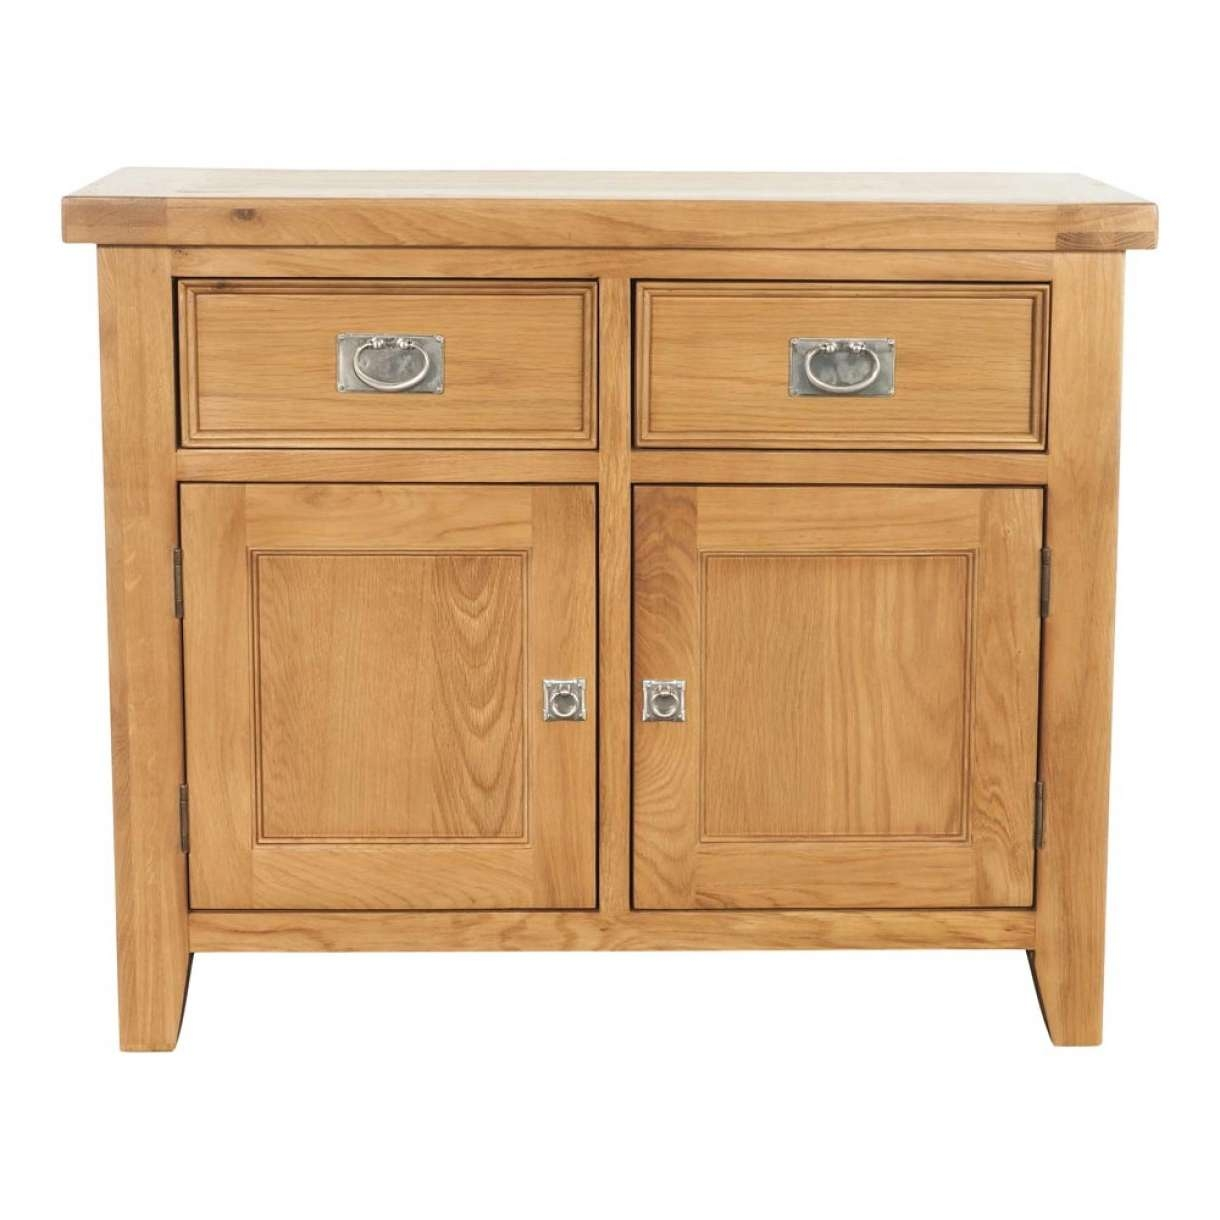 Buy Buffets And Sideboards Online | Dining | Early Settler Furniture Intended For Buffets And Sideboards (View 3 of 20)